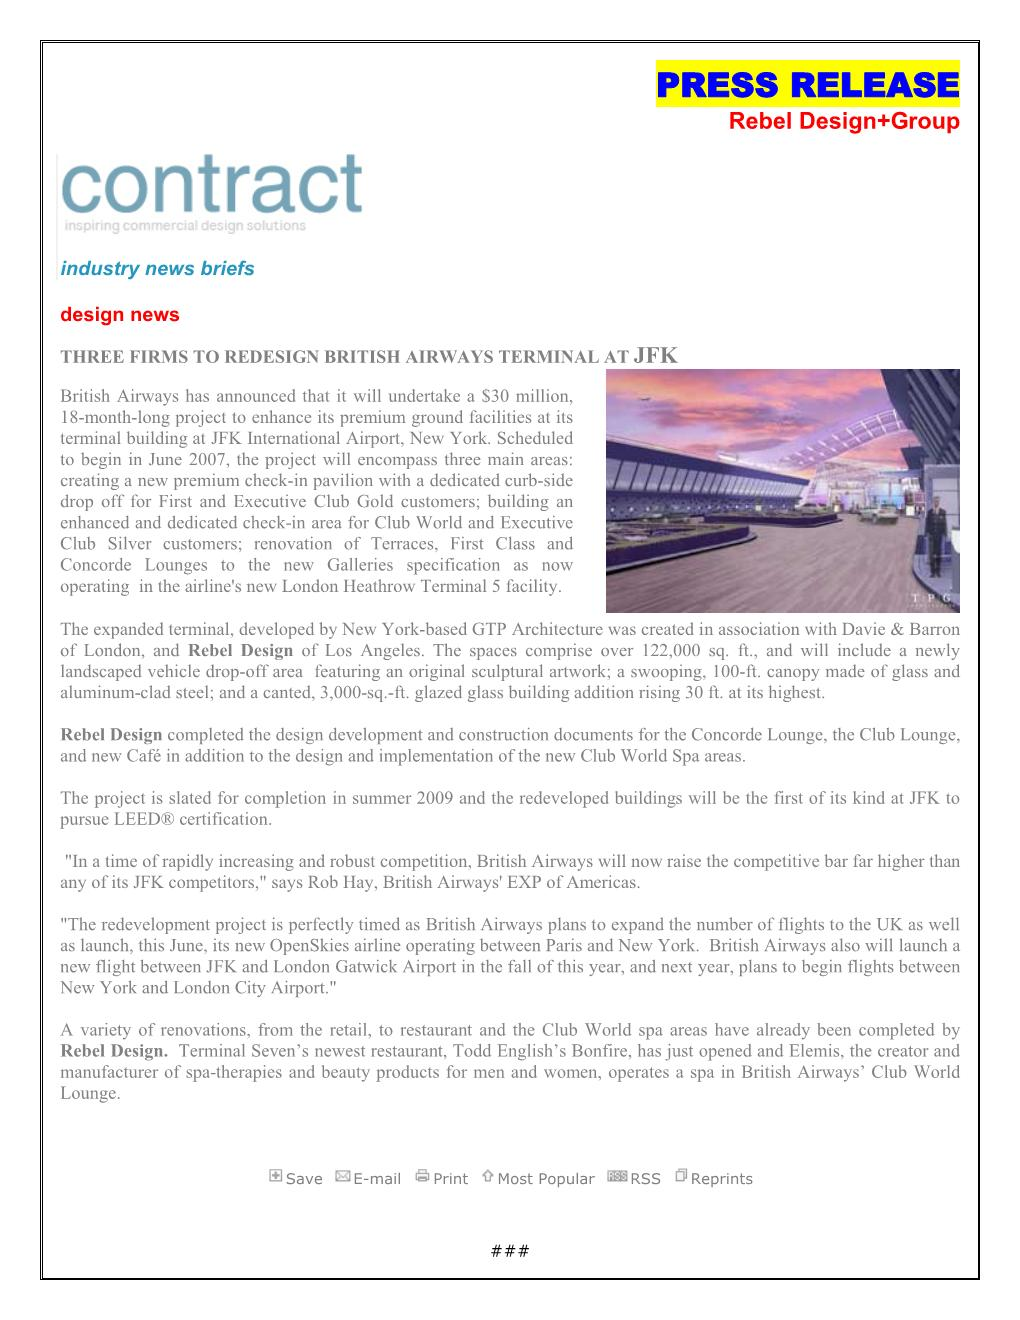 CONTRACT MAGAZINE JFK Re Rebel Design